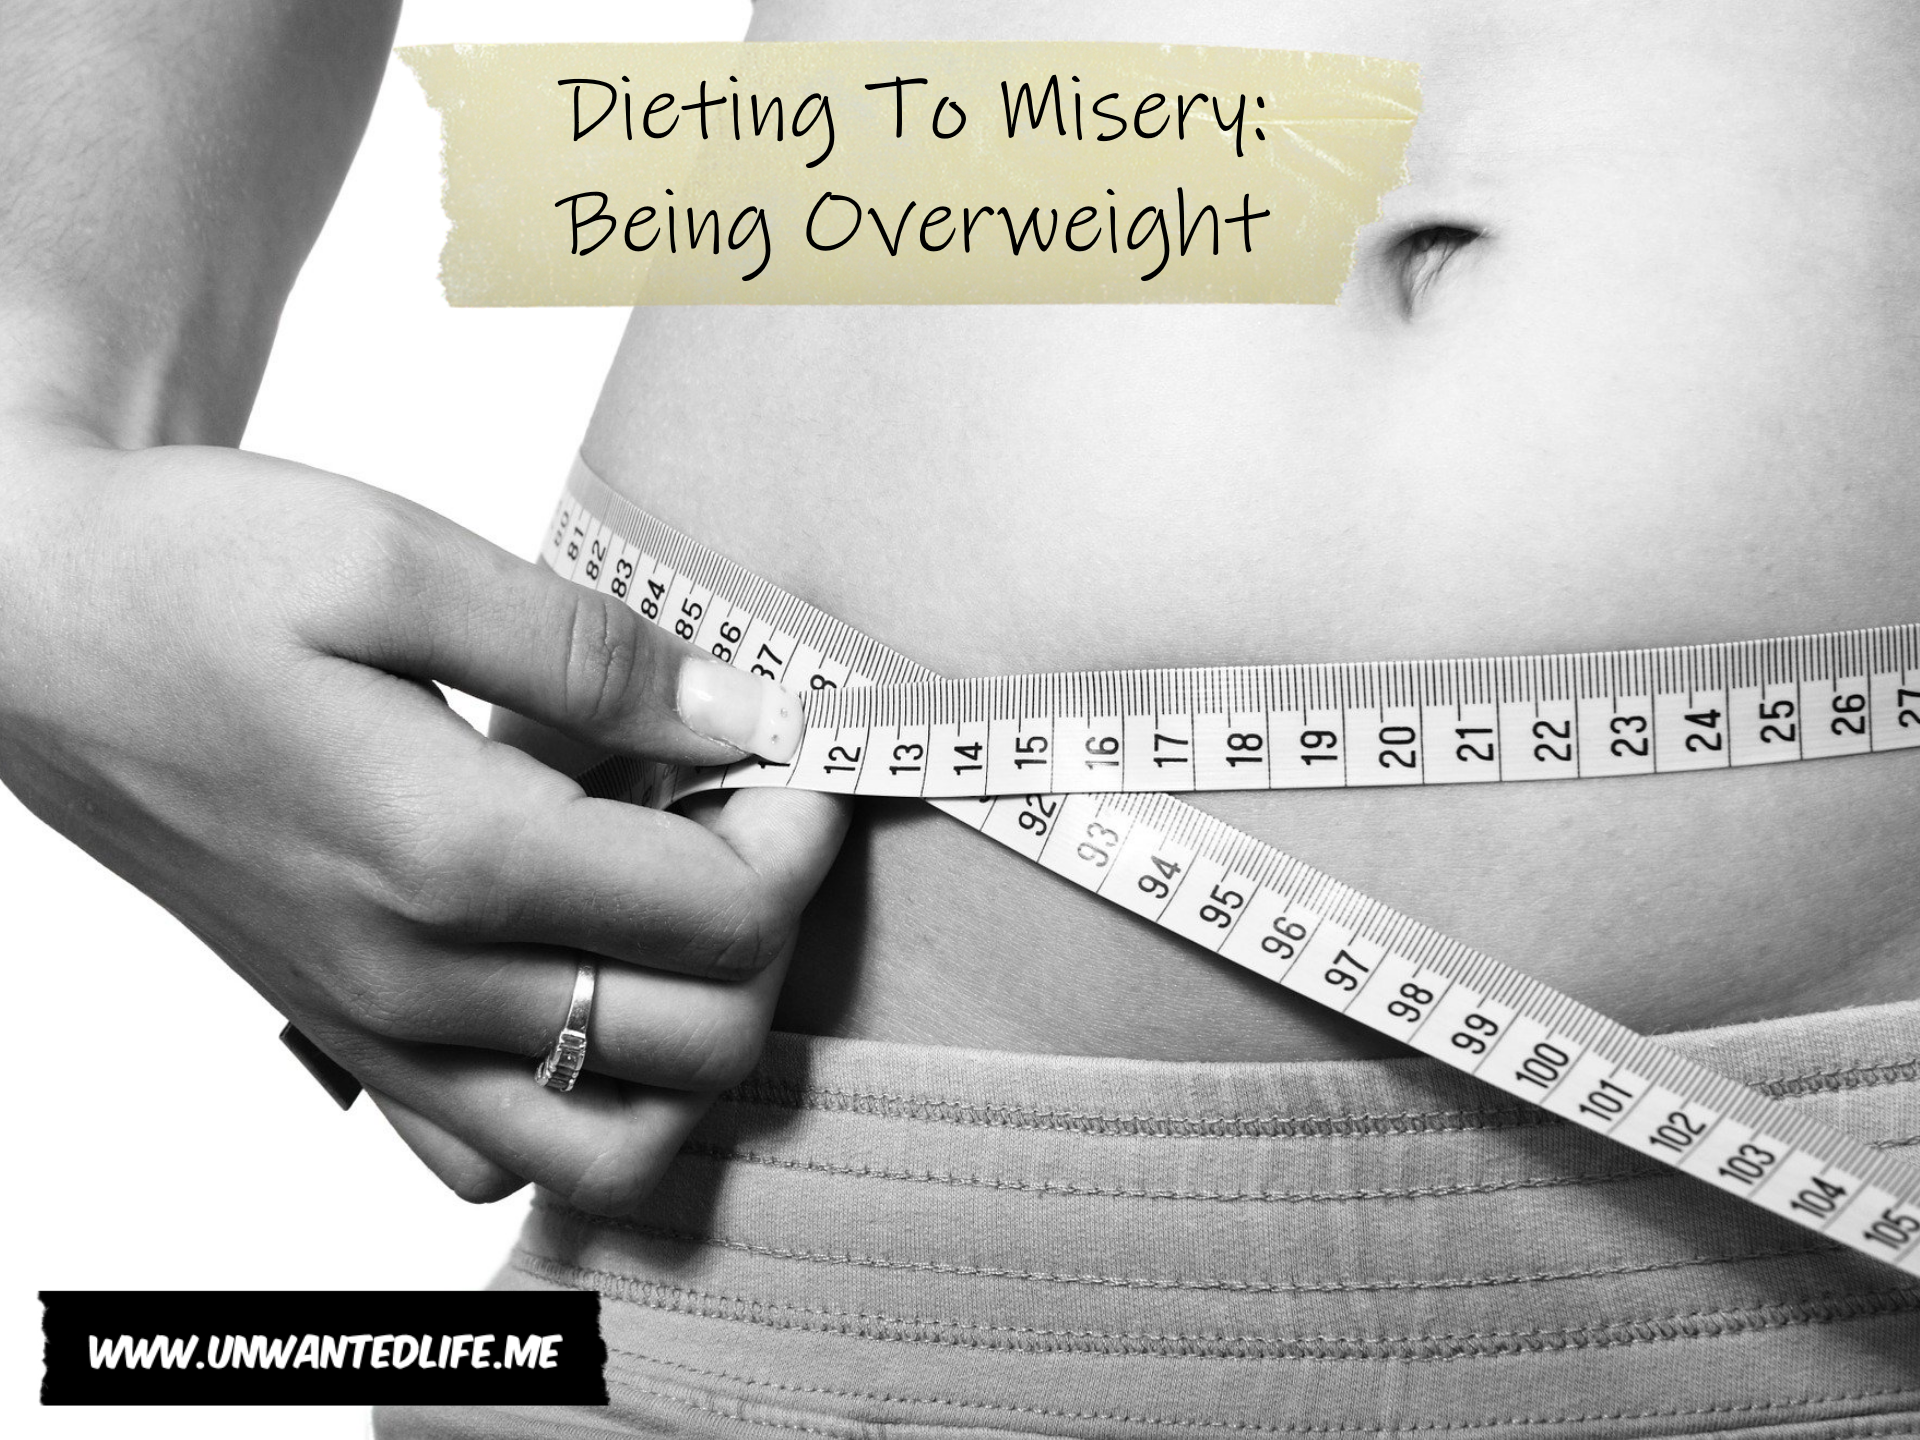 A black and white photo of a woman measuring their waistline with the article - Dieting To Misery: Being Overweight - across the top of the photo